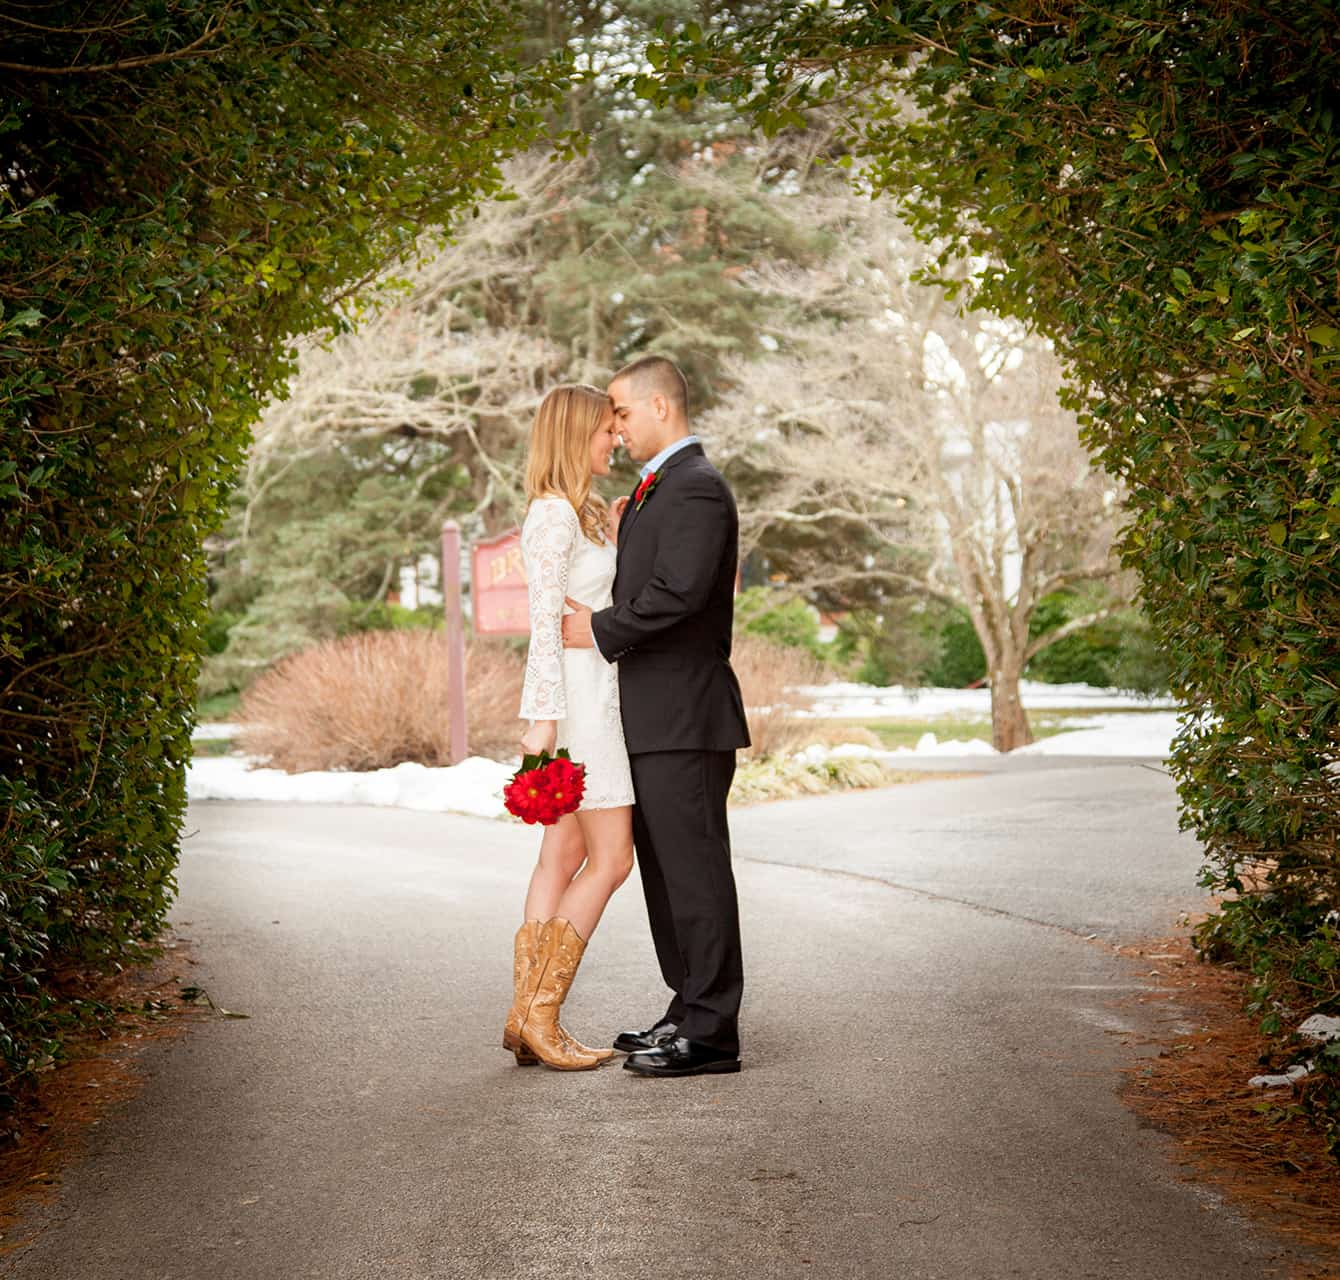 Married couple under an archway of trees